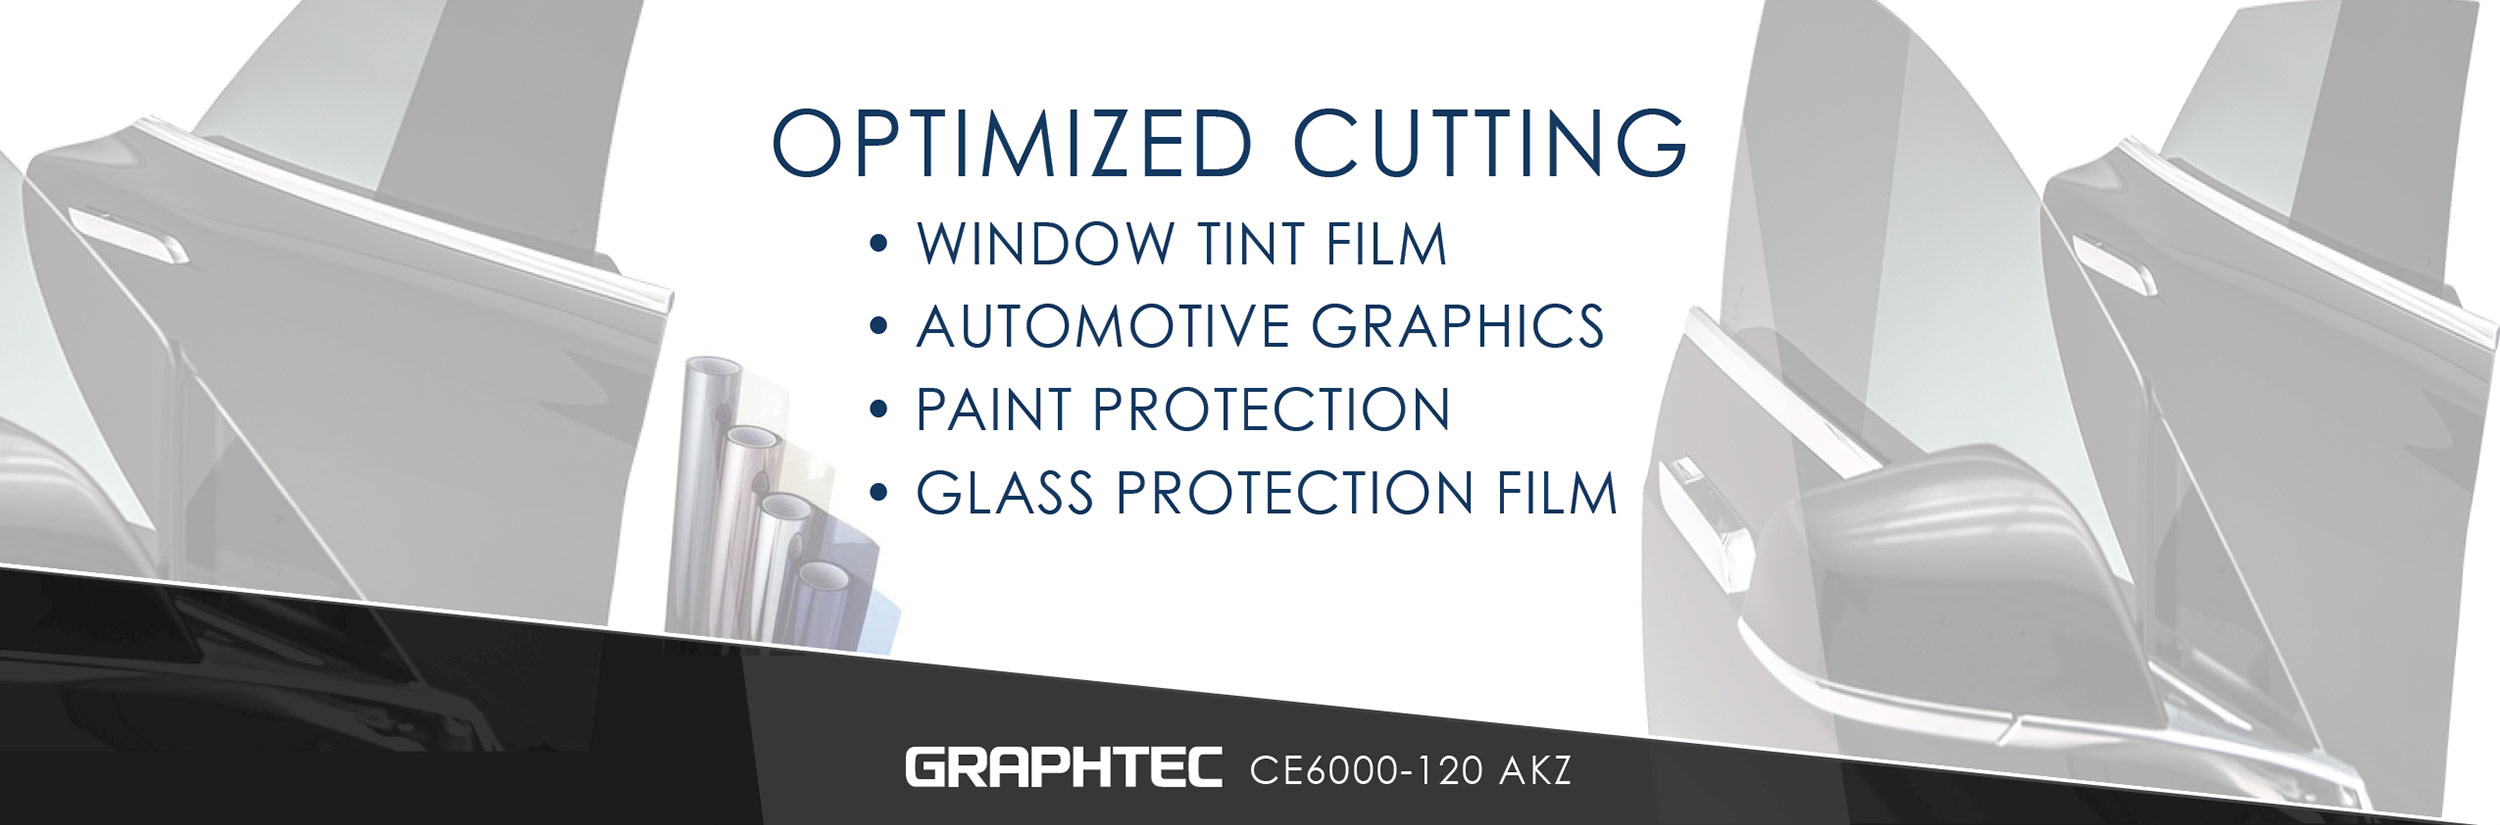 Winown-Tint-Cutter-Vinyl+Cutter+Roll-Feed-Cutter+Cutter-Machine+Graphtec+CE6000-AKZ-Optimizing-Cutting.jpg